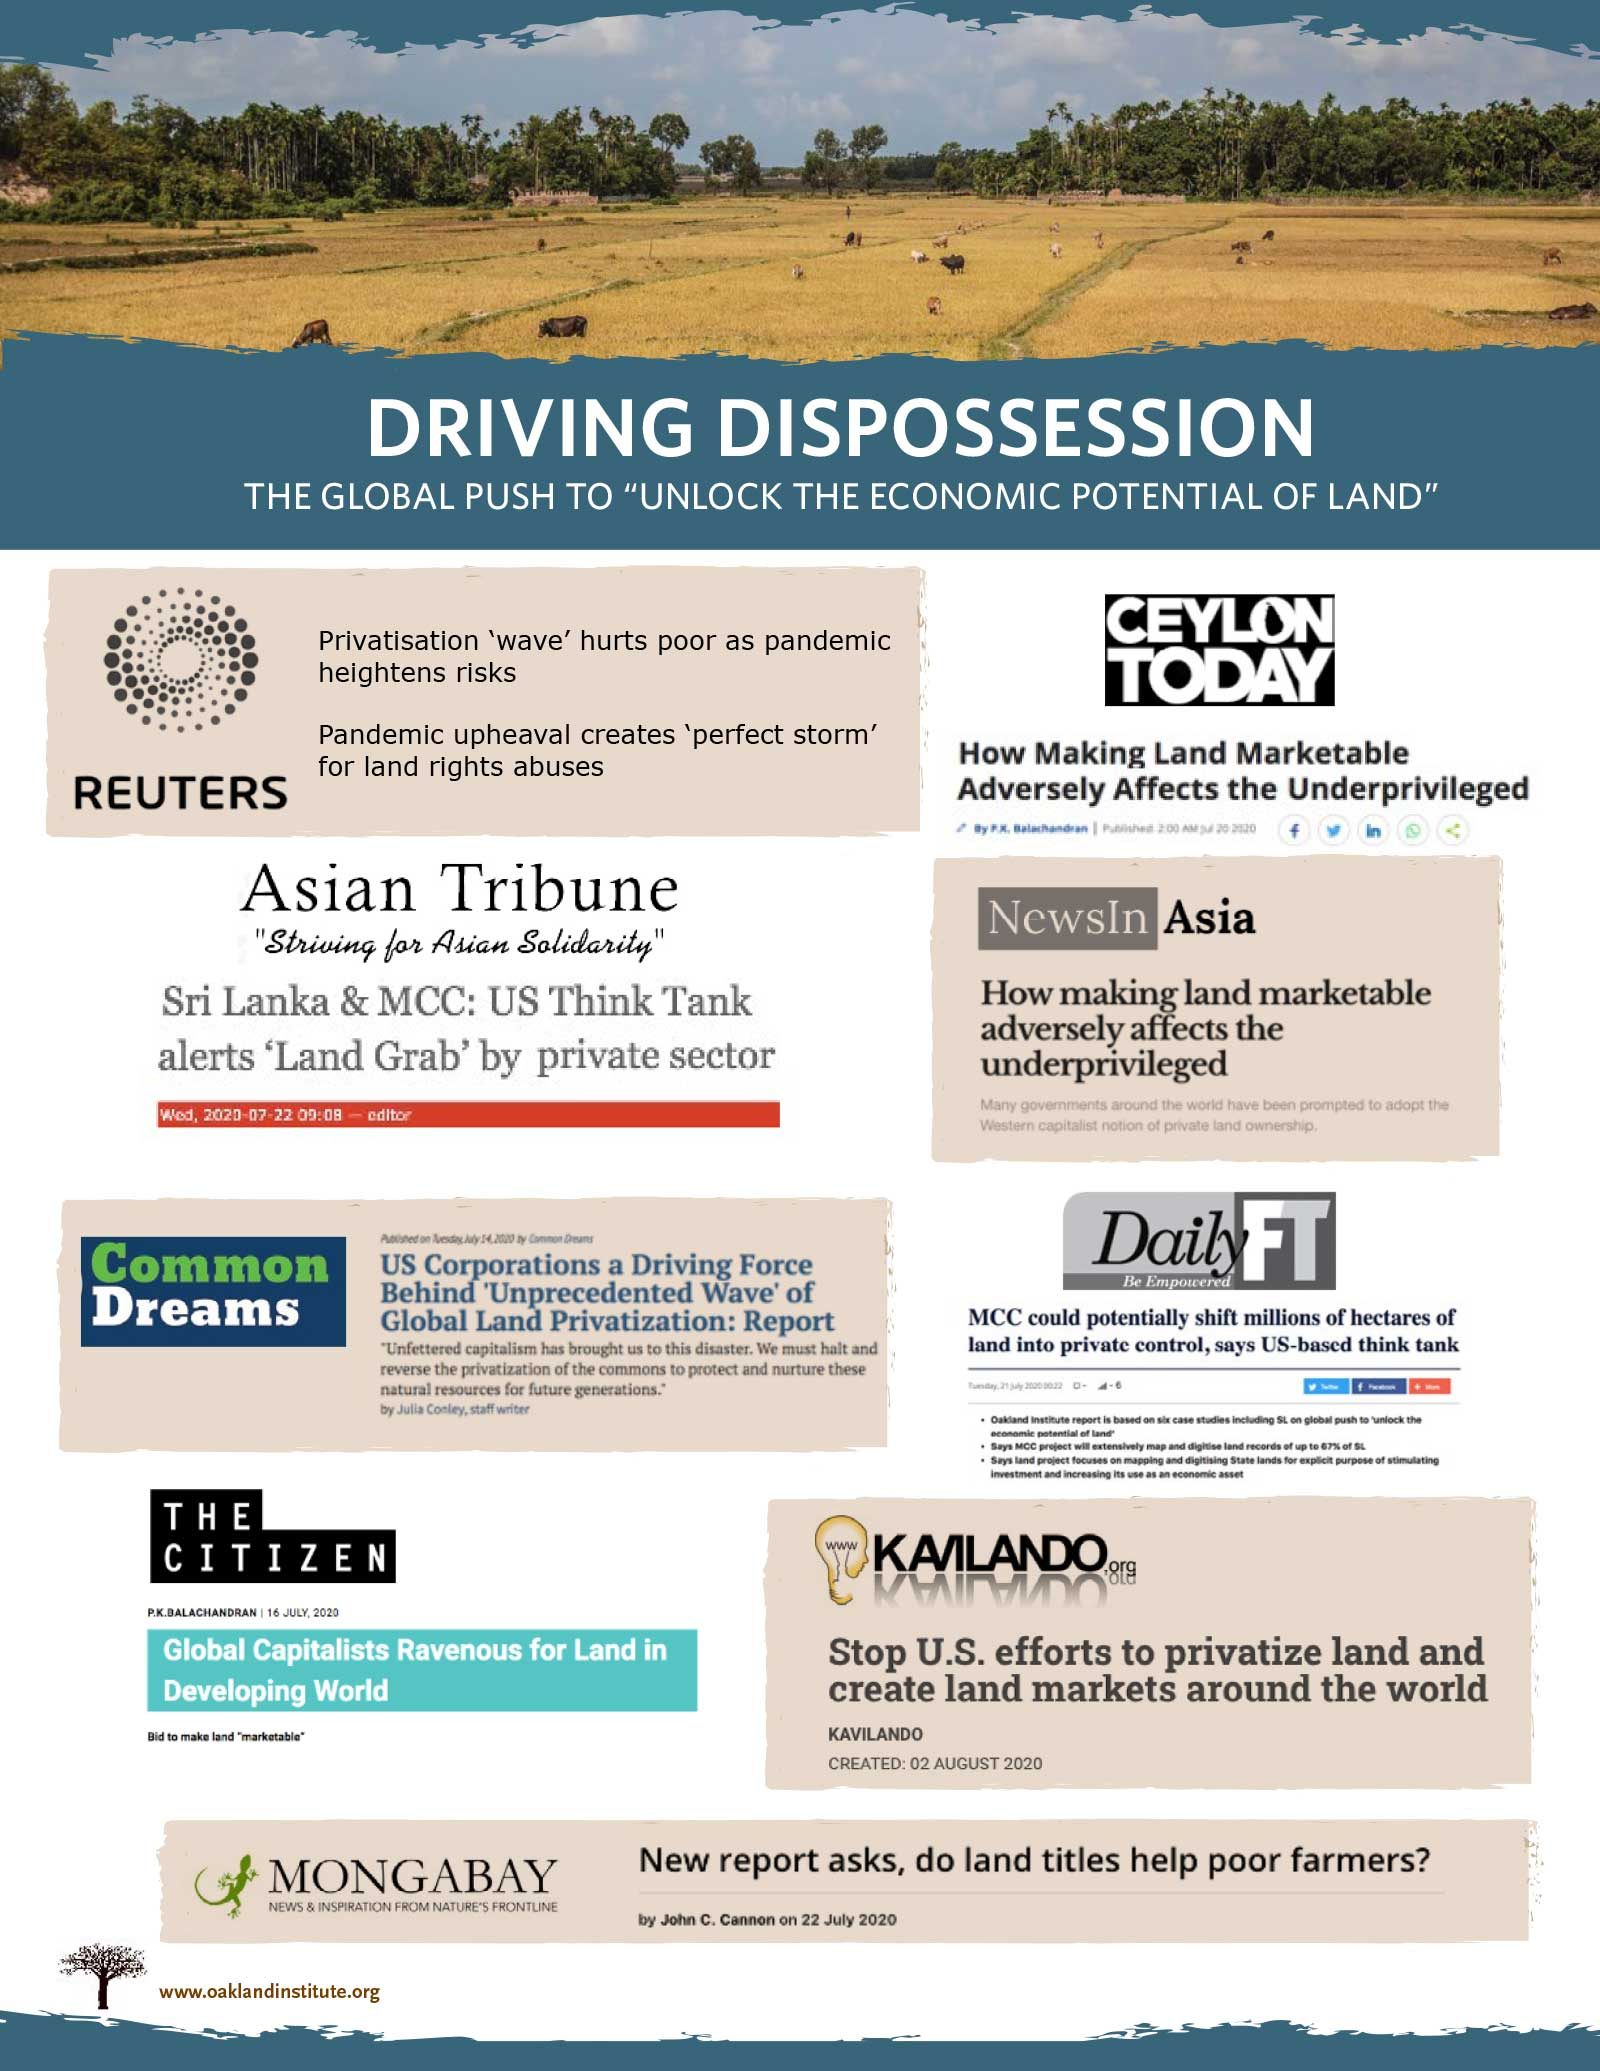 Driving Dispossession media coverage summary